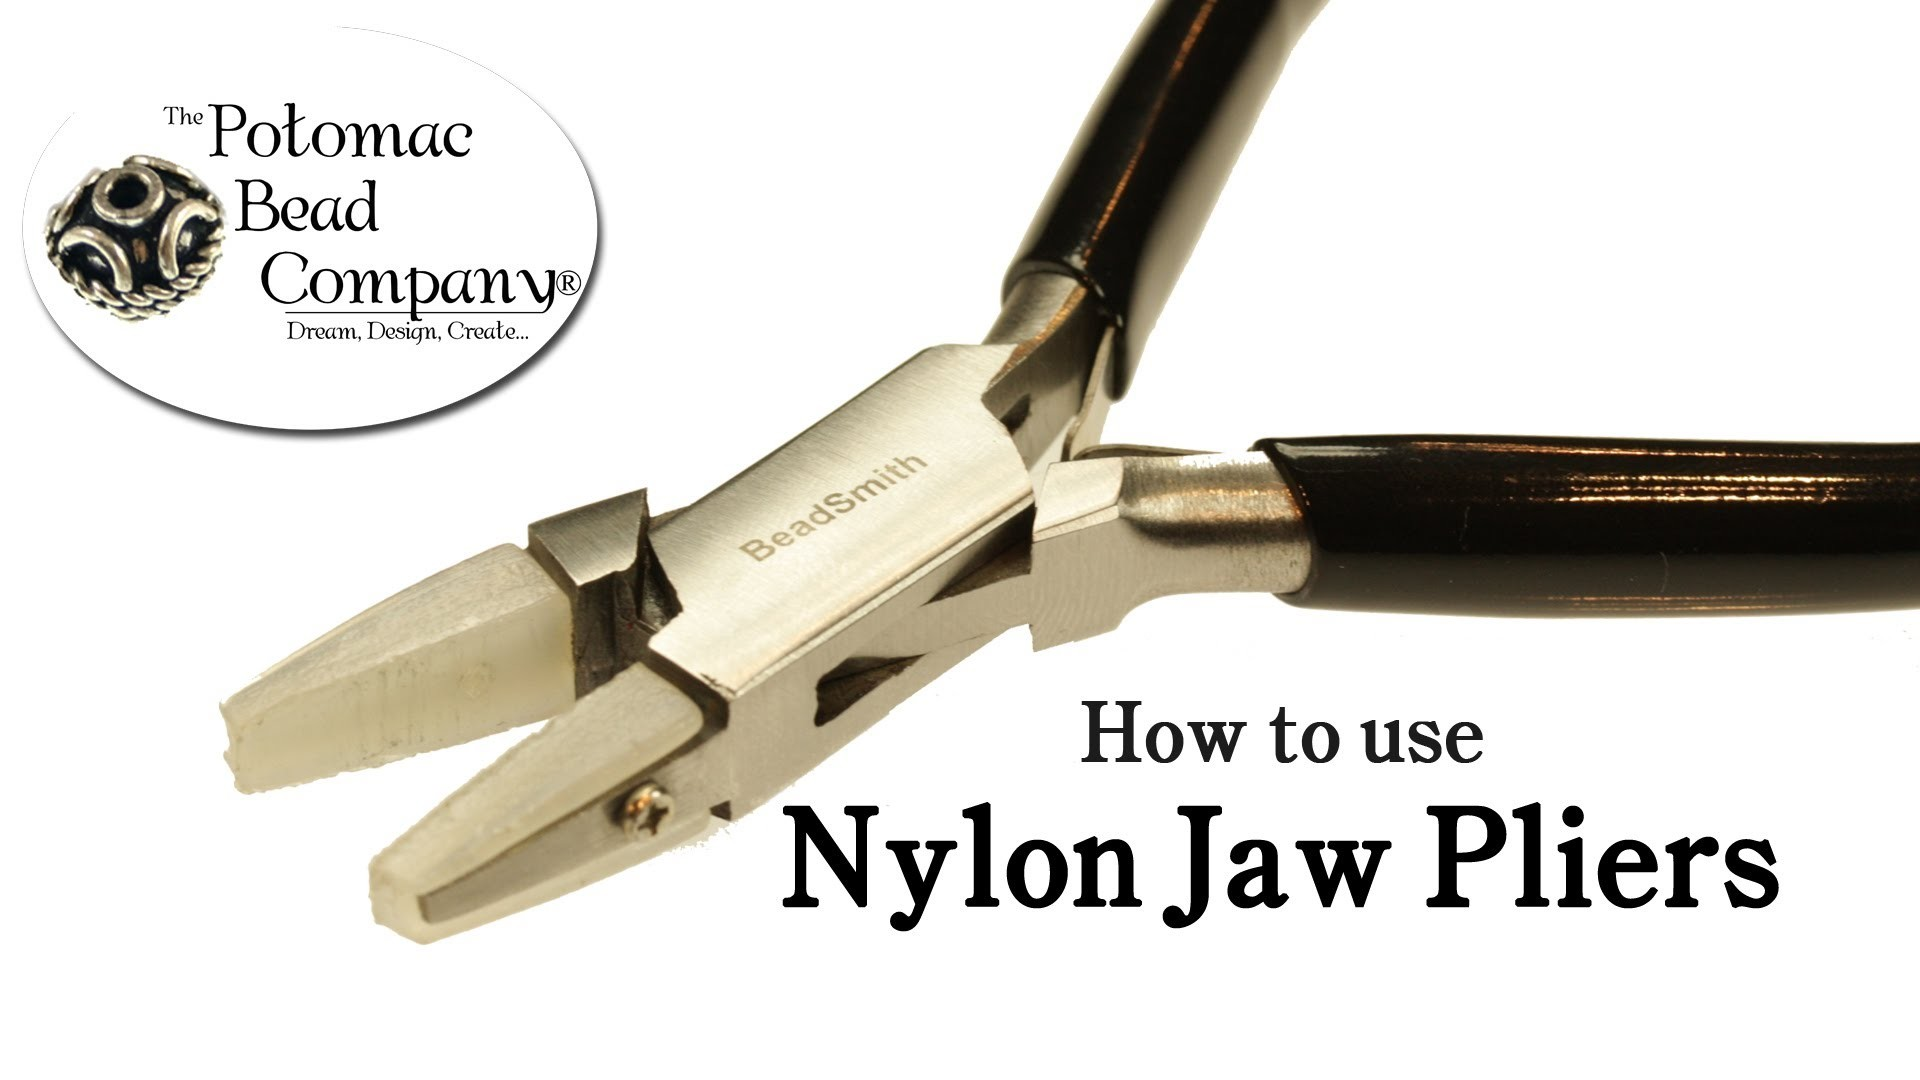 How to Use Nylon Jaw Pliers